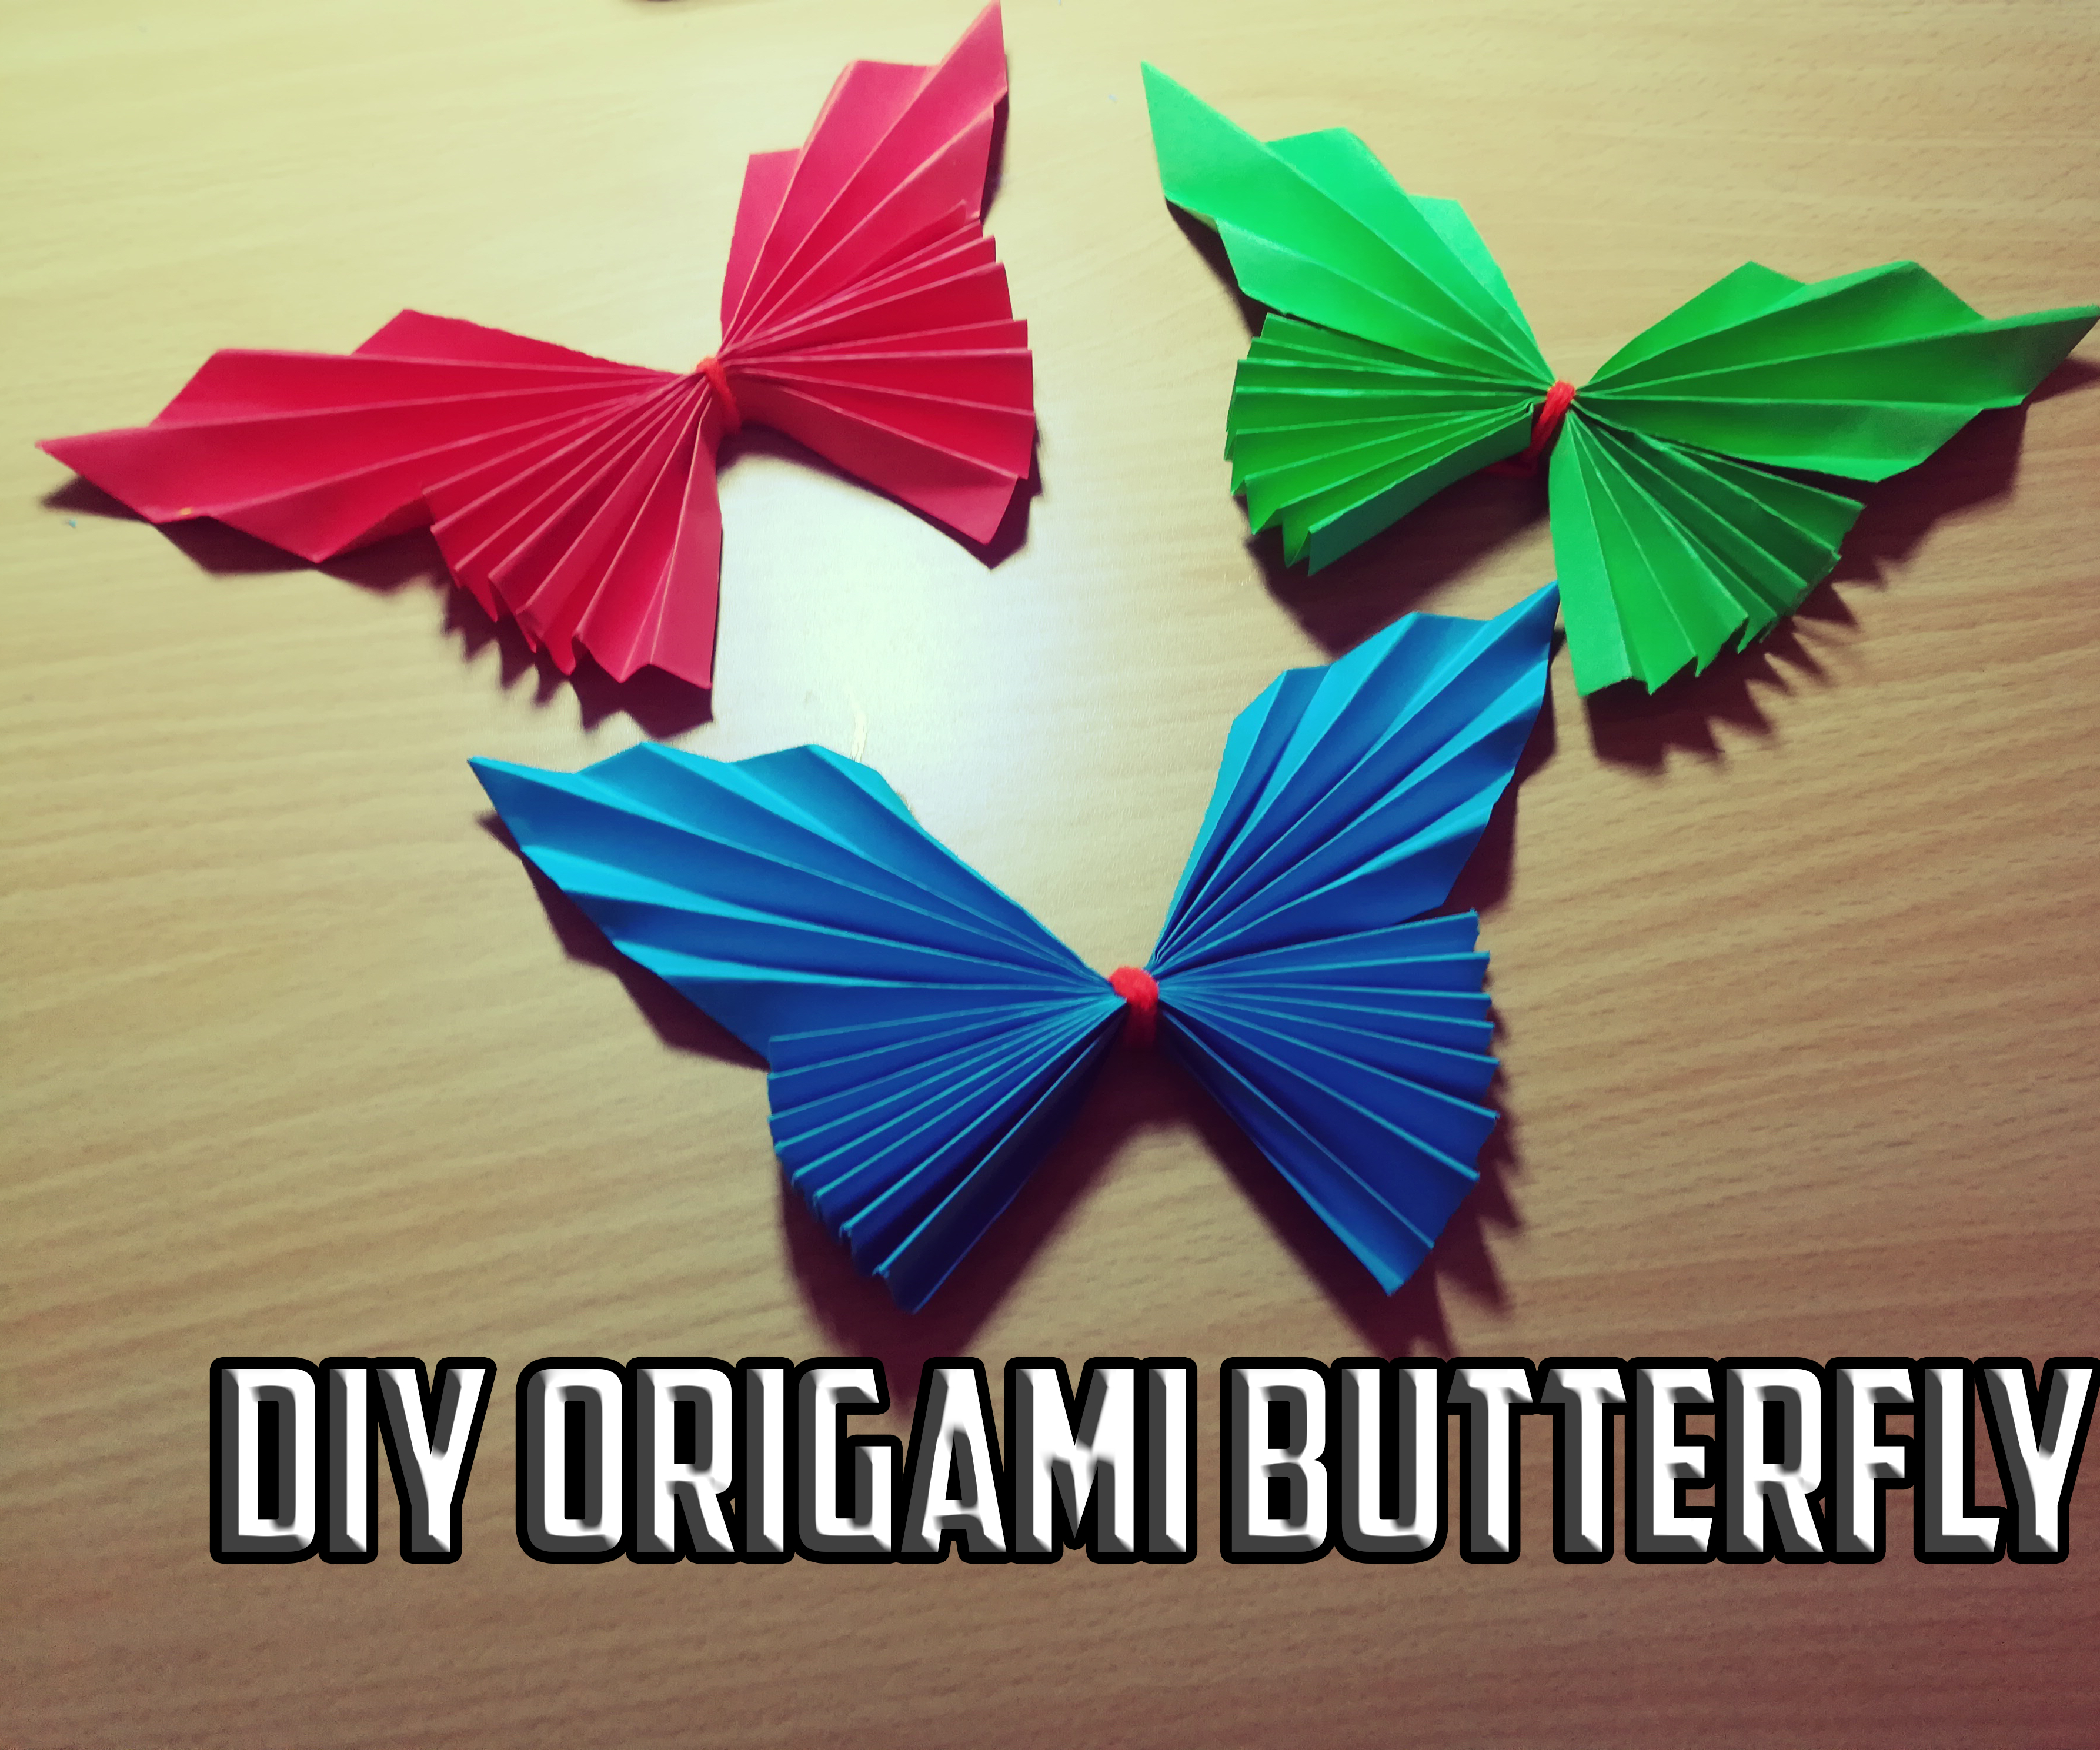 How To Make A 3D Origami Butterfly Diy Origami Butterfly 5 Steps With Pictures